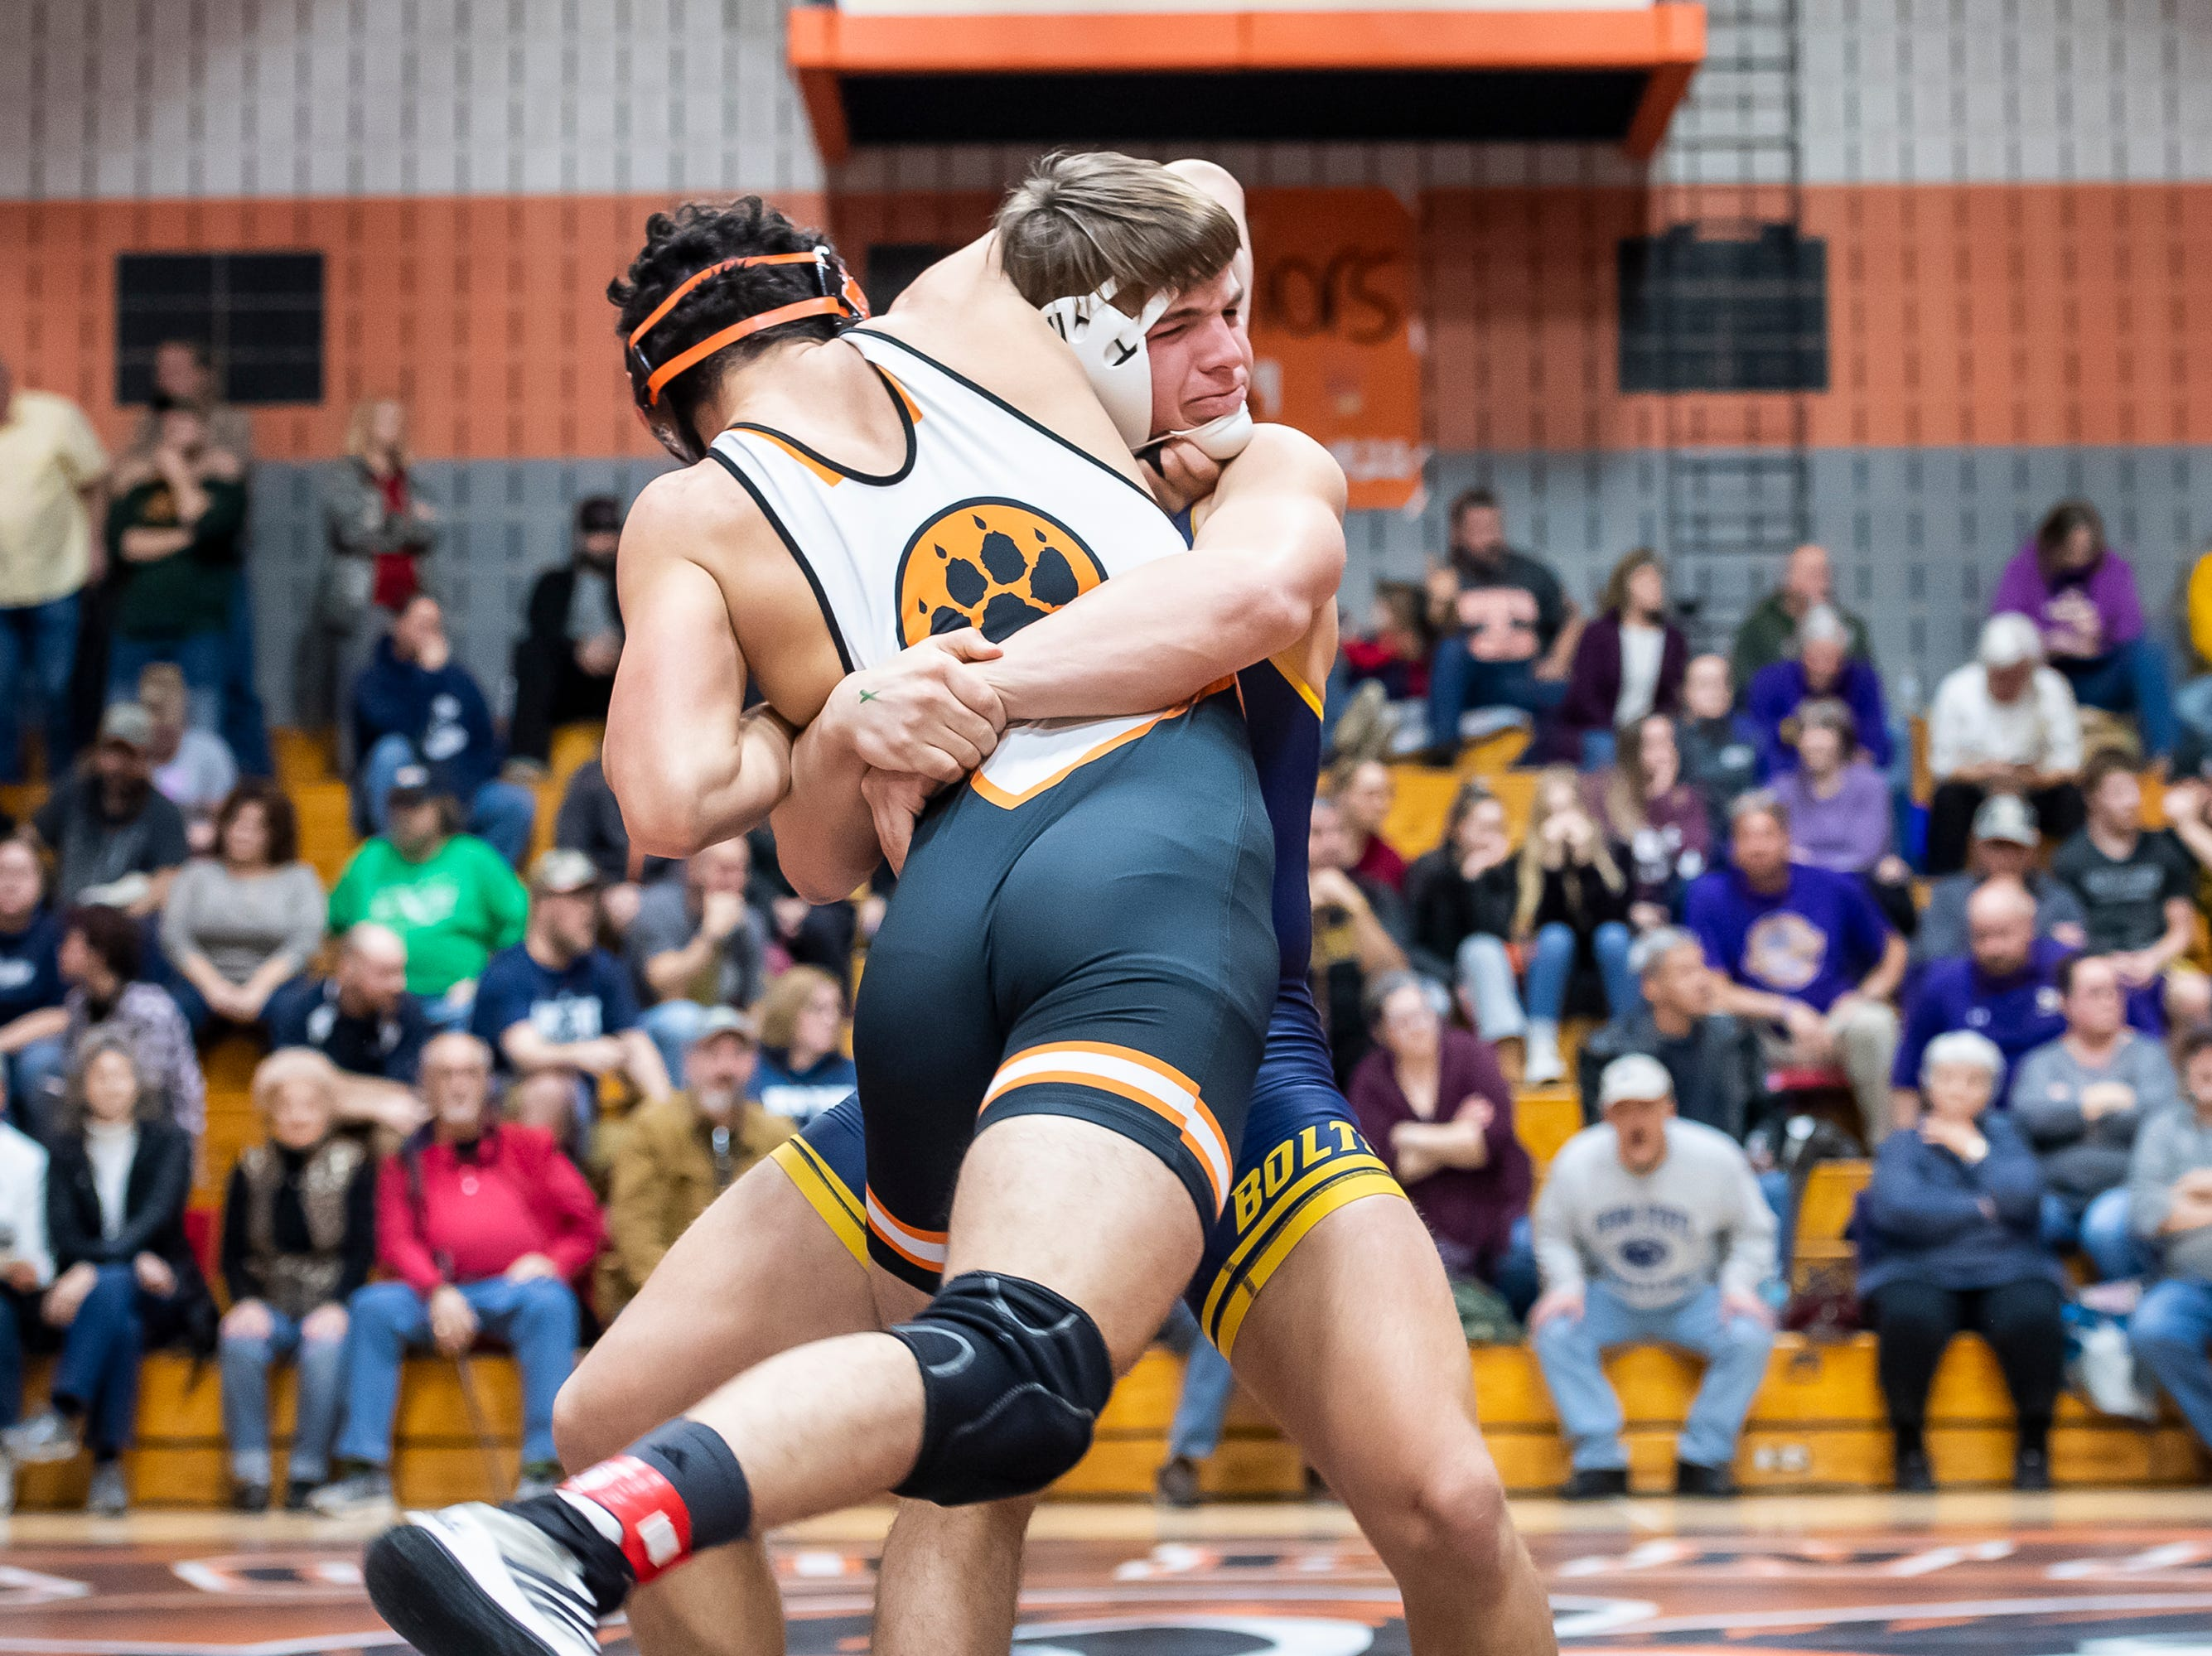 Littlestown's Jacoby Yealy, back, wrestles East Pennsboro's Abdelrahman Khalafalla in a 145-pound bout on the first day of the District 3 Class 2A Section I tournament at Susquenita High School Friday, February 15, 2019. Yealy won by fall.